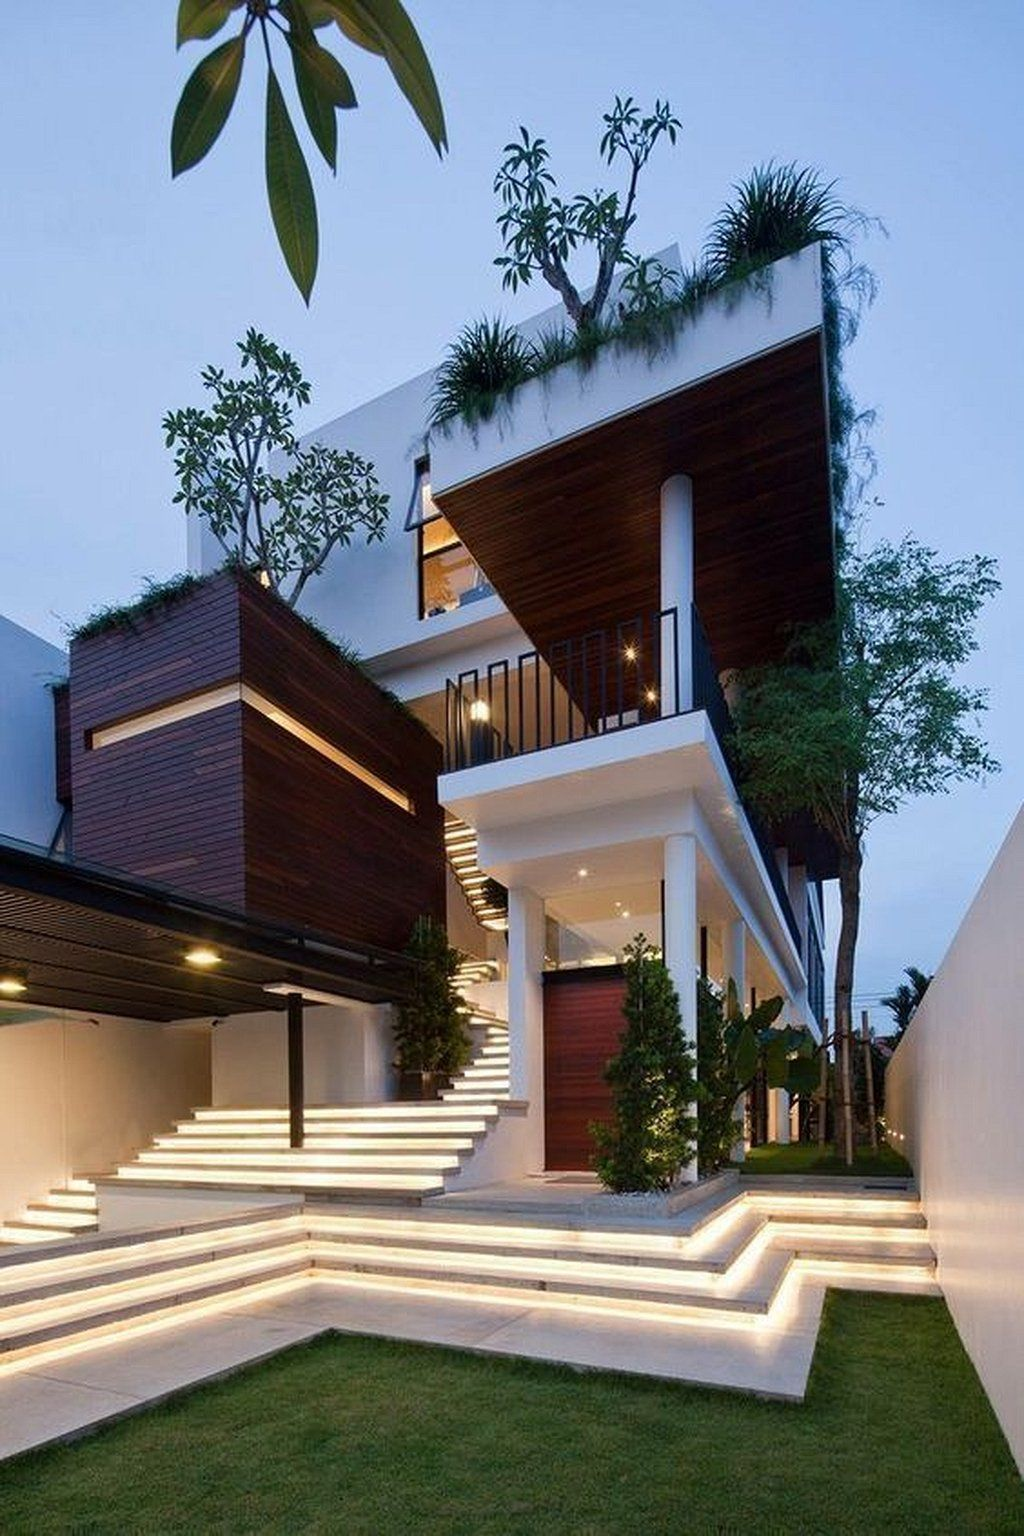 21 The Most Unique Modern Home Design In The World New Dream House Exterior House Designs Exterior House Exterior